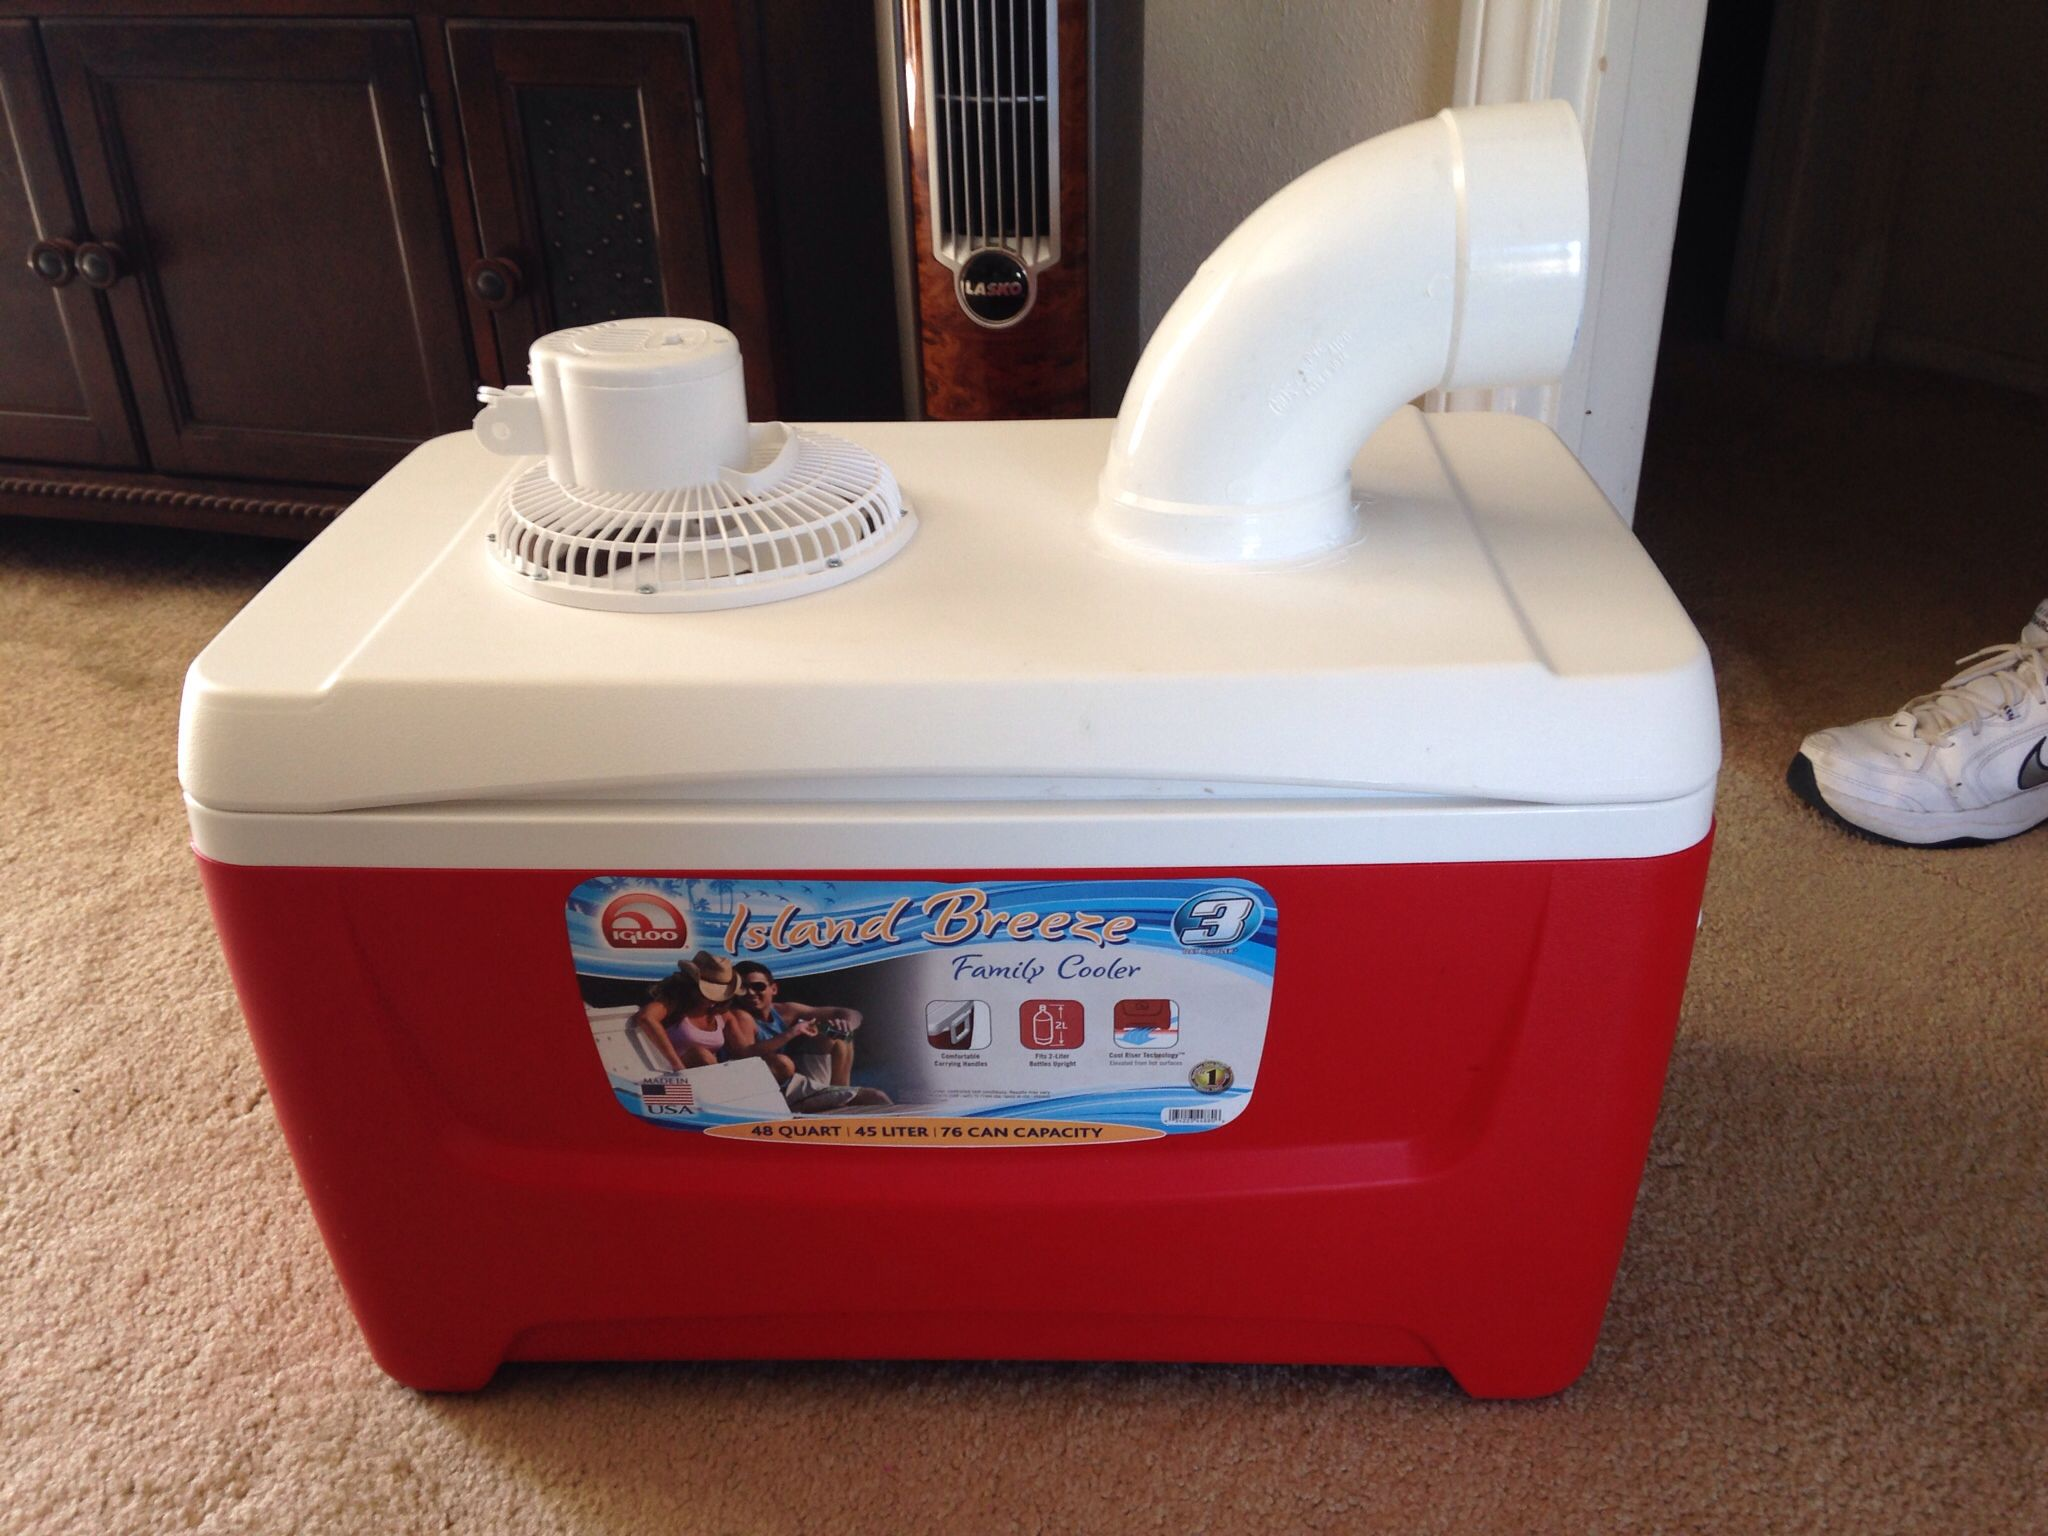 Diy Evaporative Coolers : My husband made this homemade swamp cooler in about